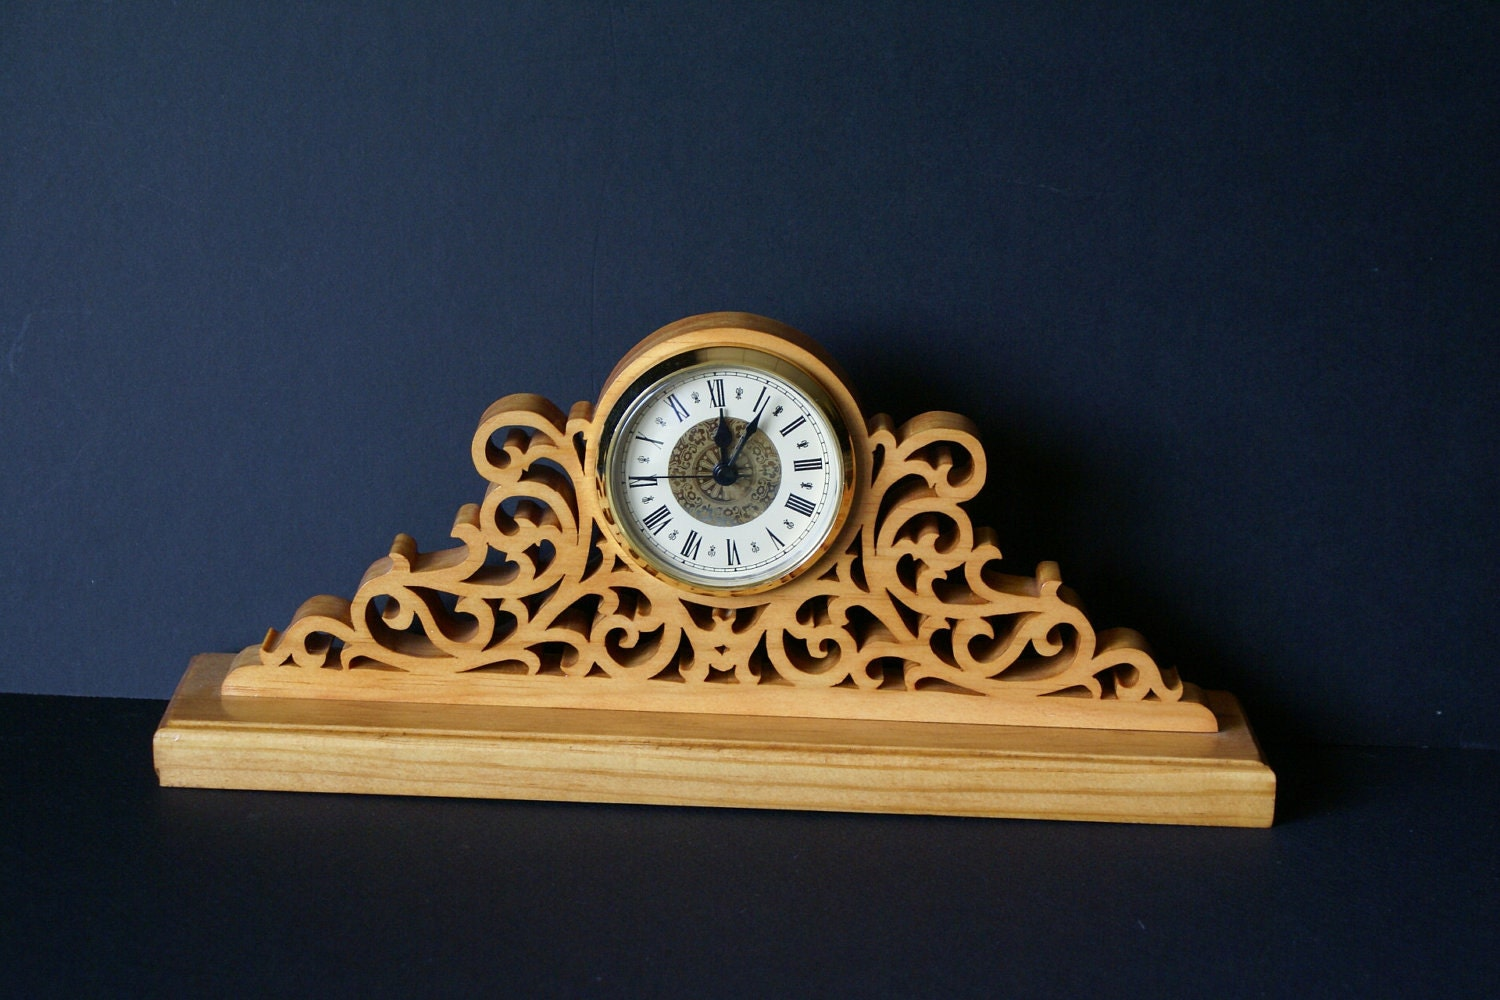 Fretwork Ornate Wood Mantel Clock Scroll Saw Cut